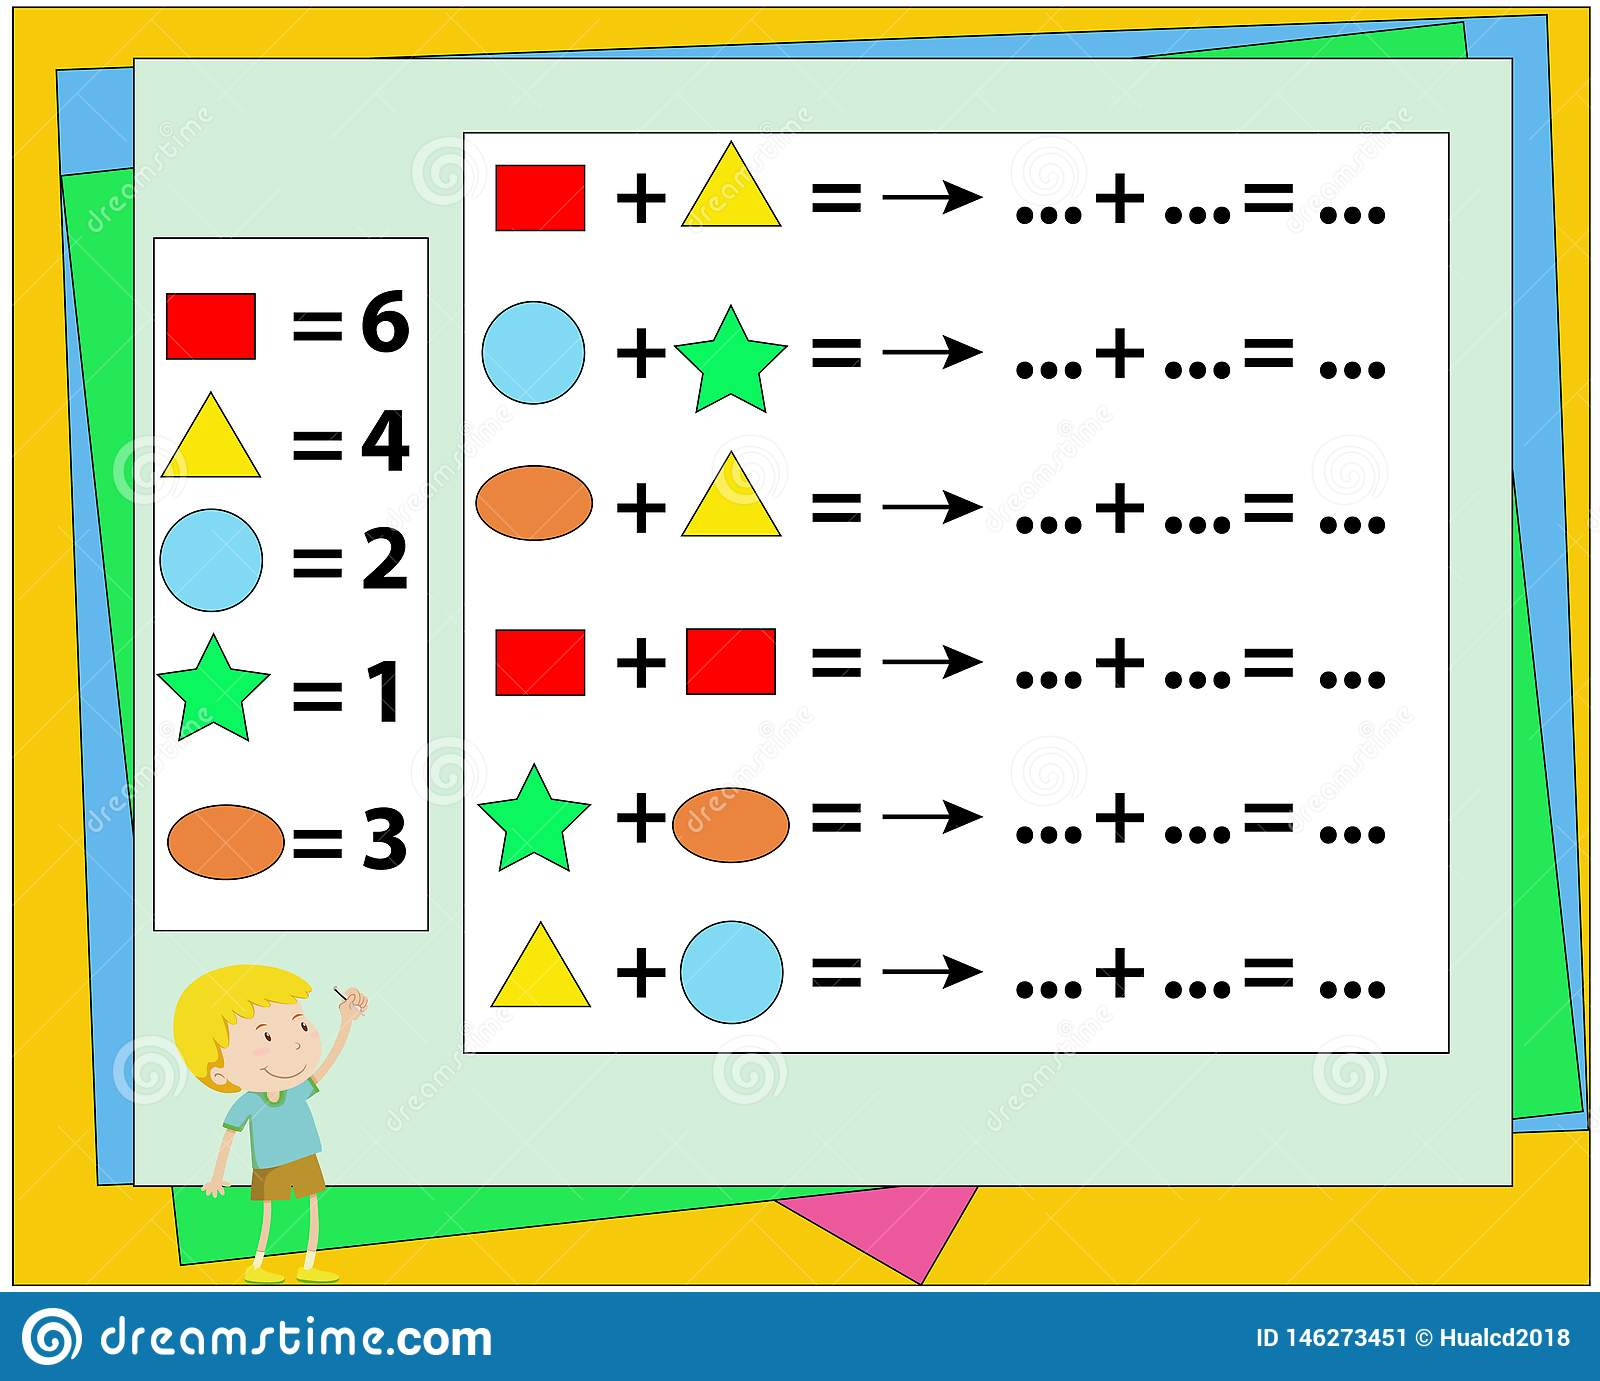 Mathematical Puzzle Game Learning Mathematics Tasks For